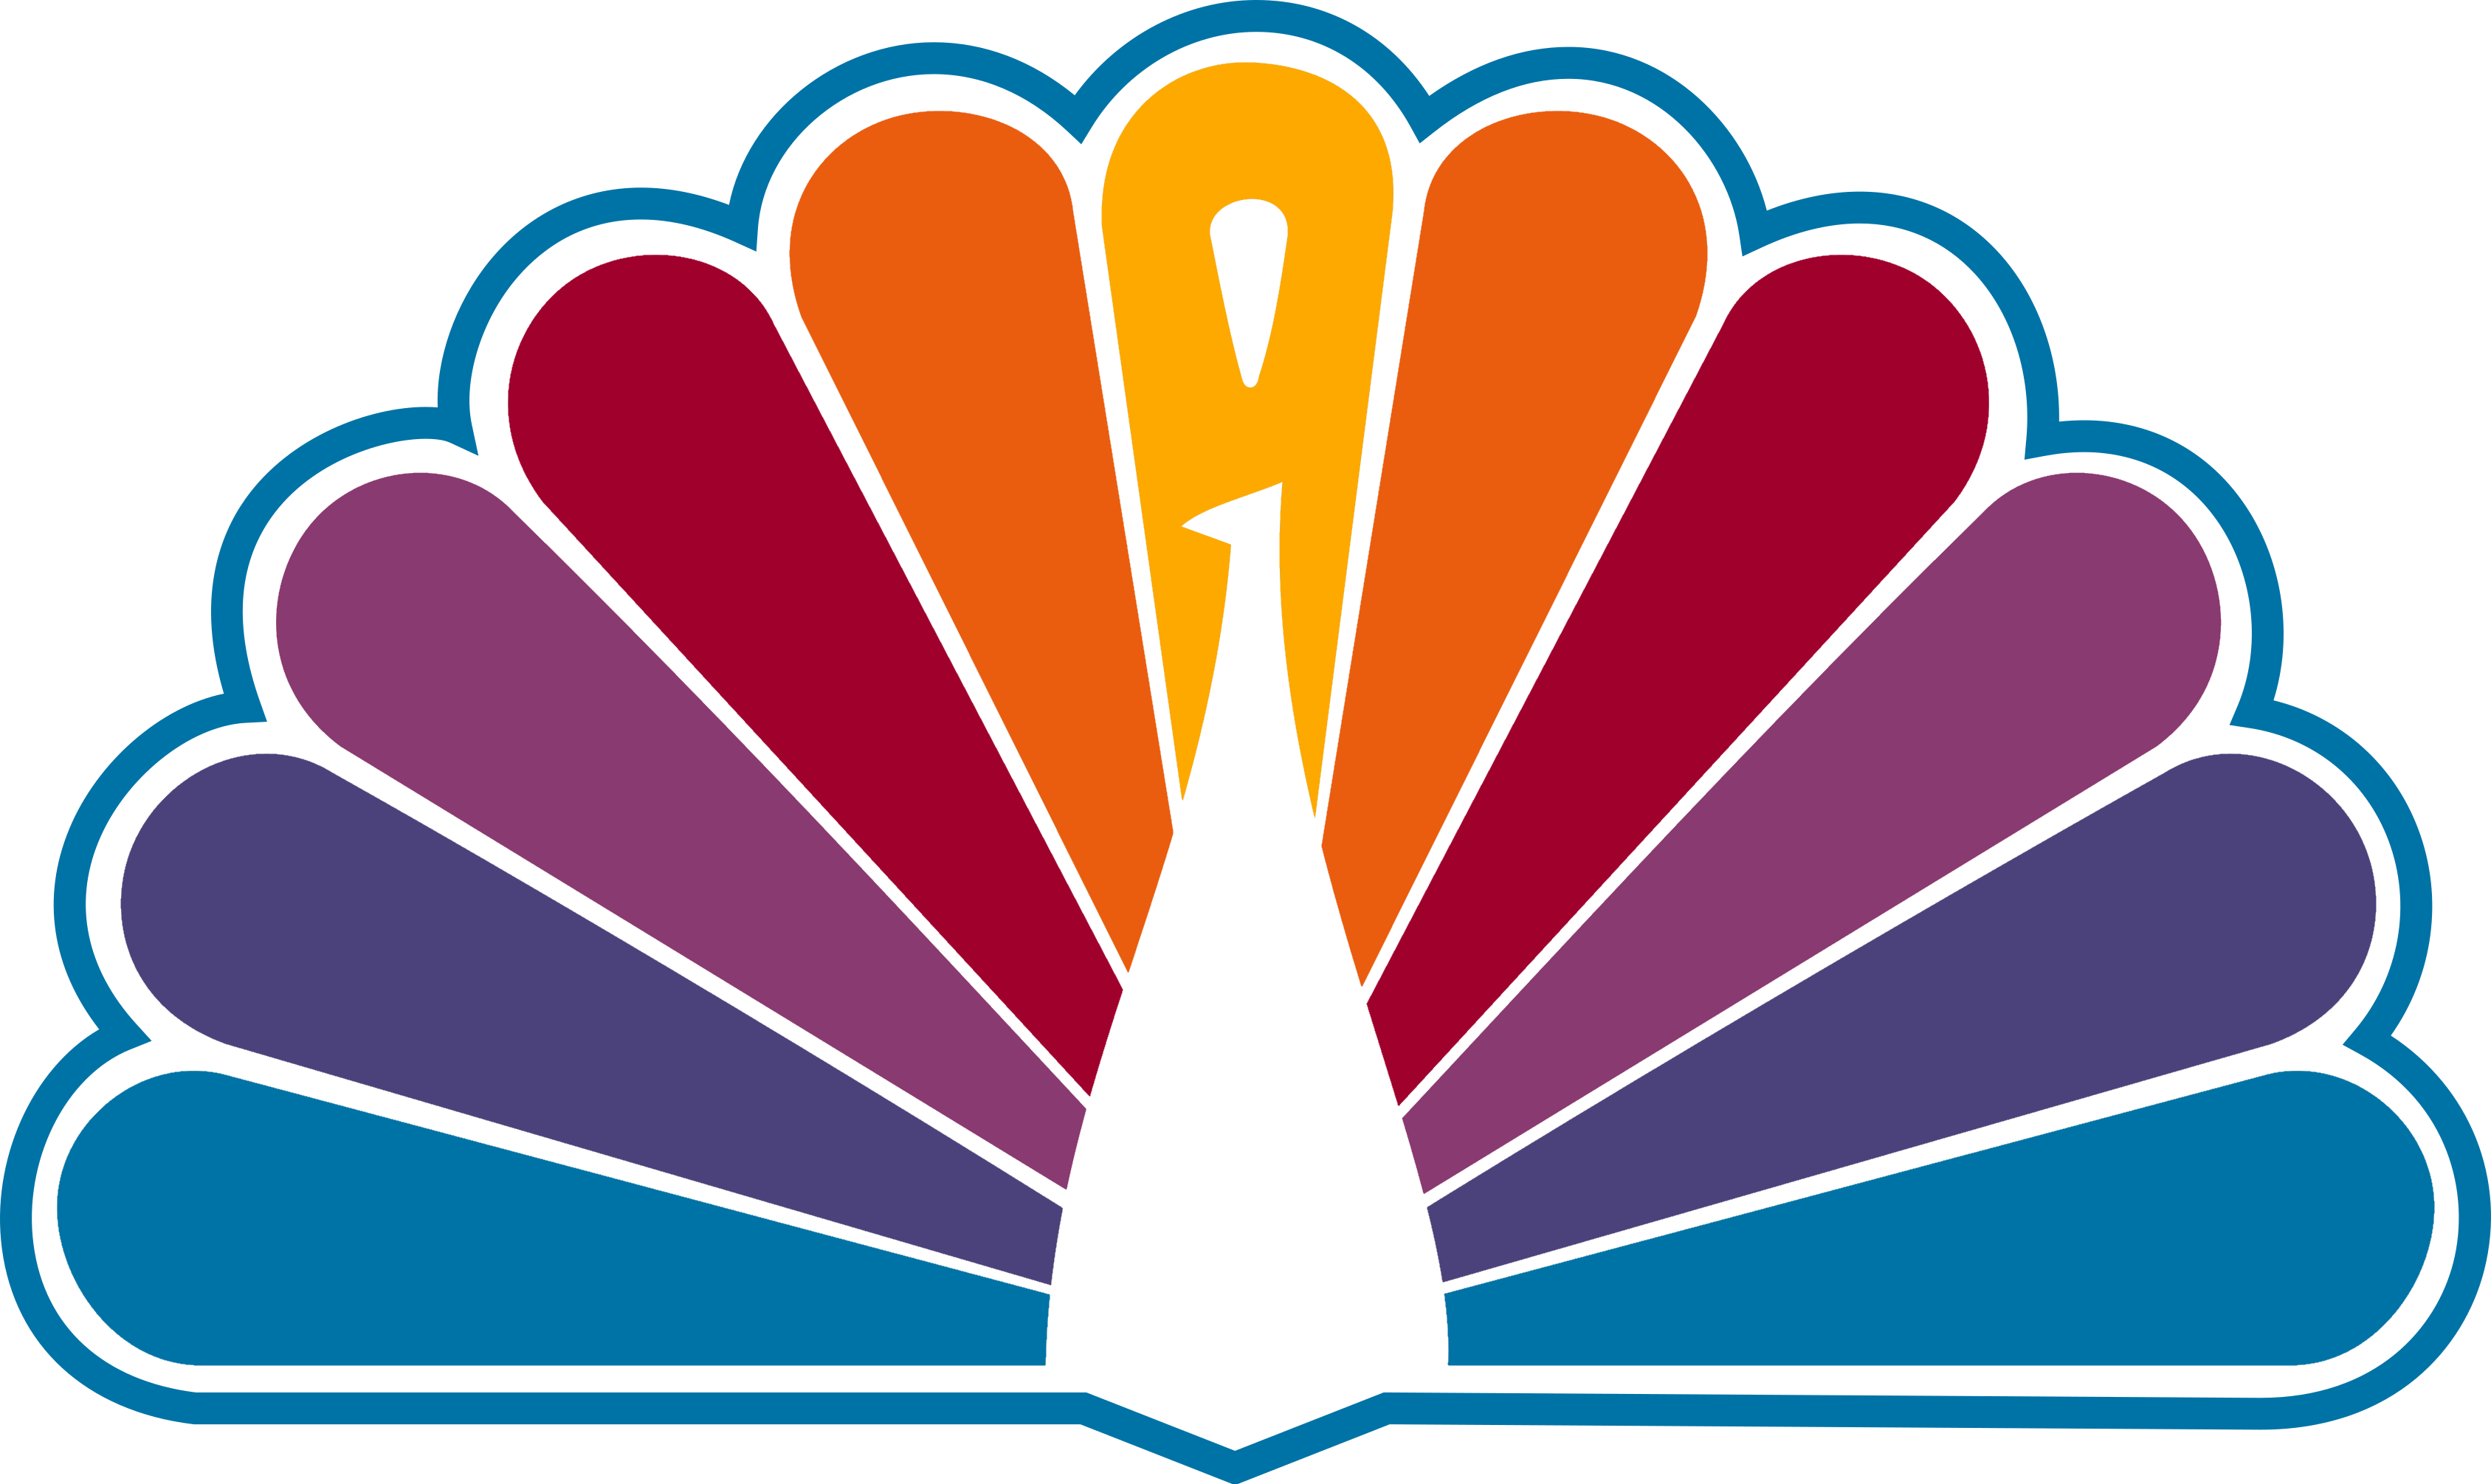 NBC 1979 Peacock (Reversed Colors) by lukesamsthesecond on ...